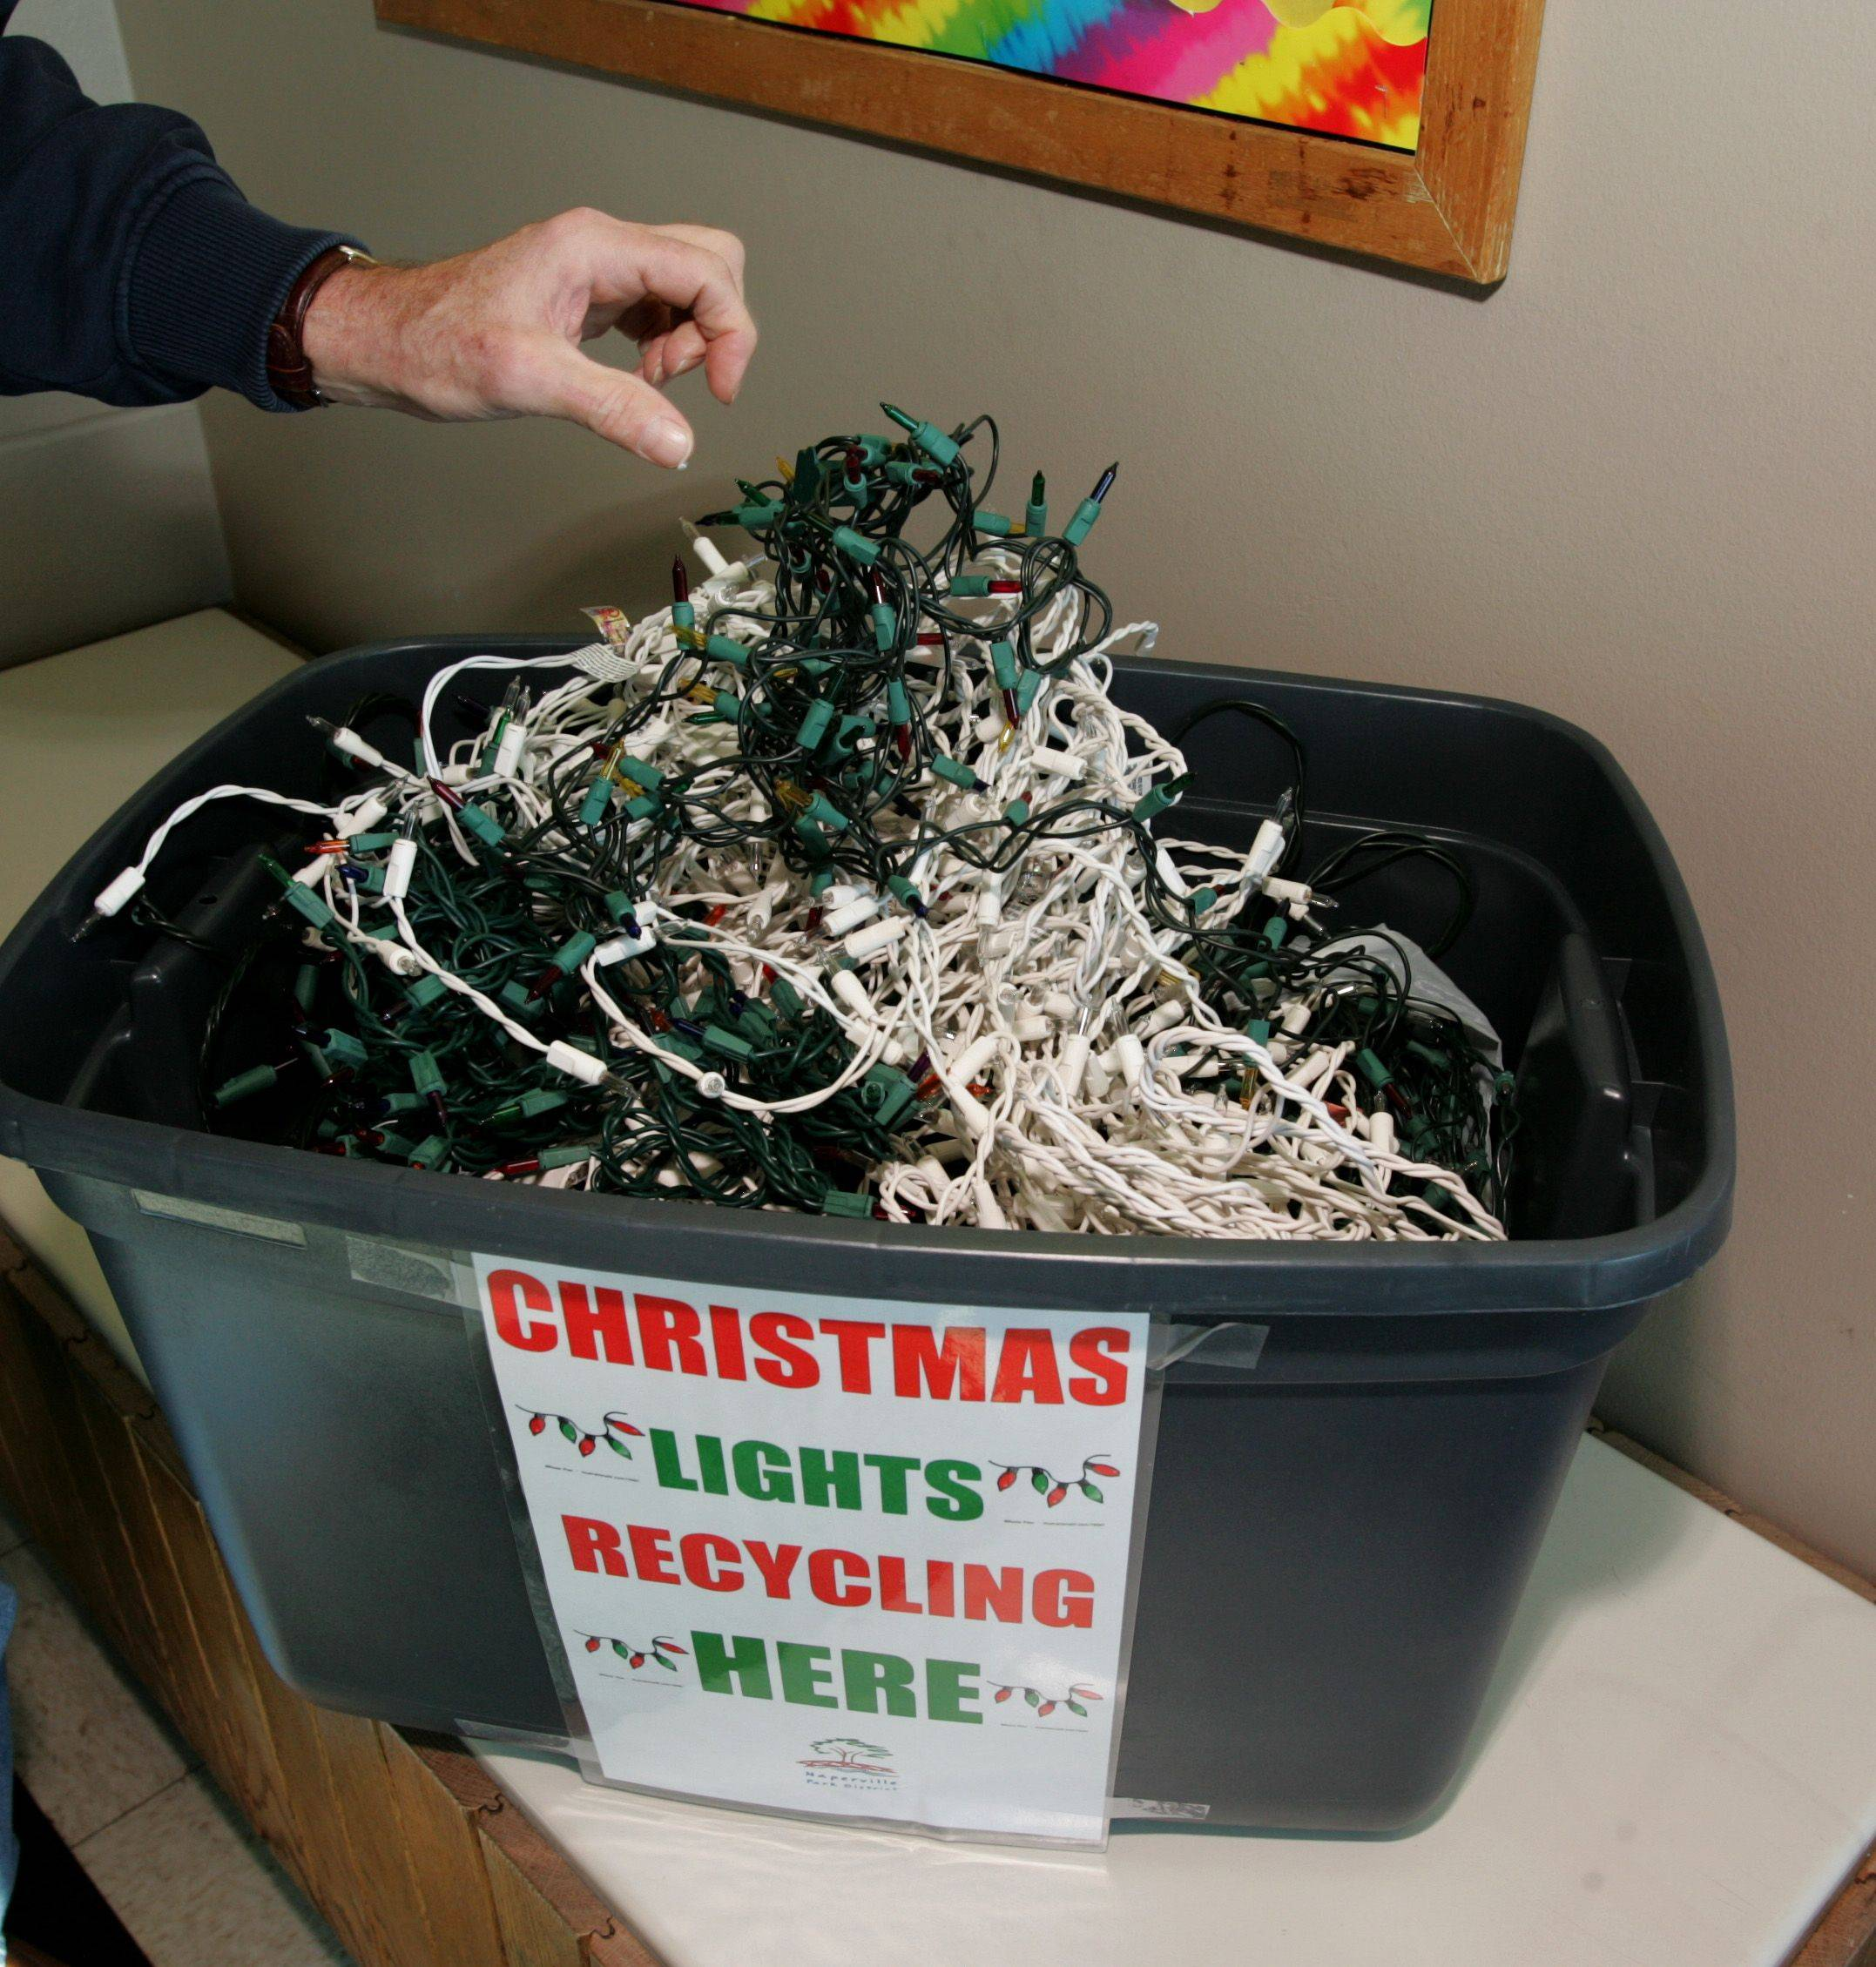 Naperville has various areas around the city that recycle Christmas tree lights, like the one at 421 Martin Ave.